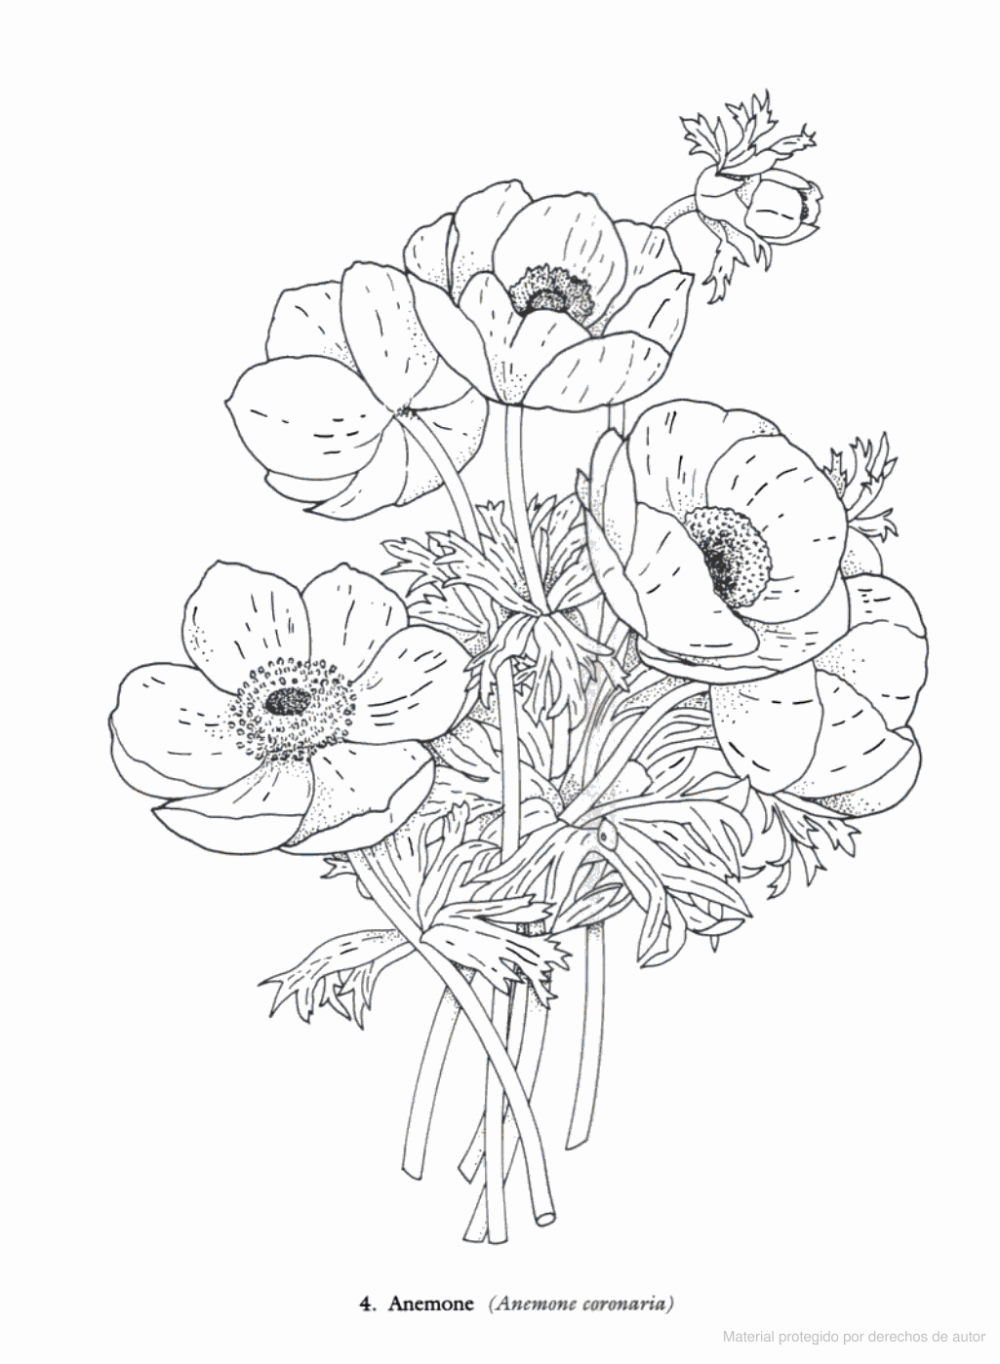 Redoute Flowers Coloring Book Charlene Tarbox Google Libros Coloring Books Flower Coloring Pages Coloring Pages For Grown Ups